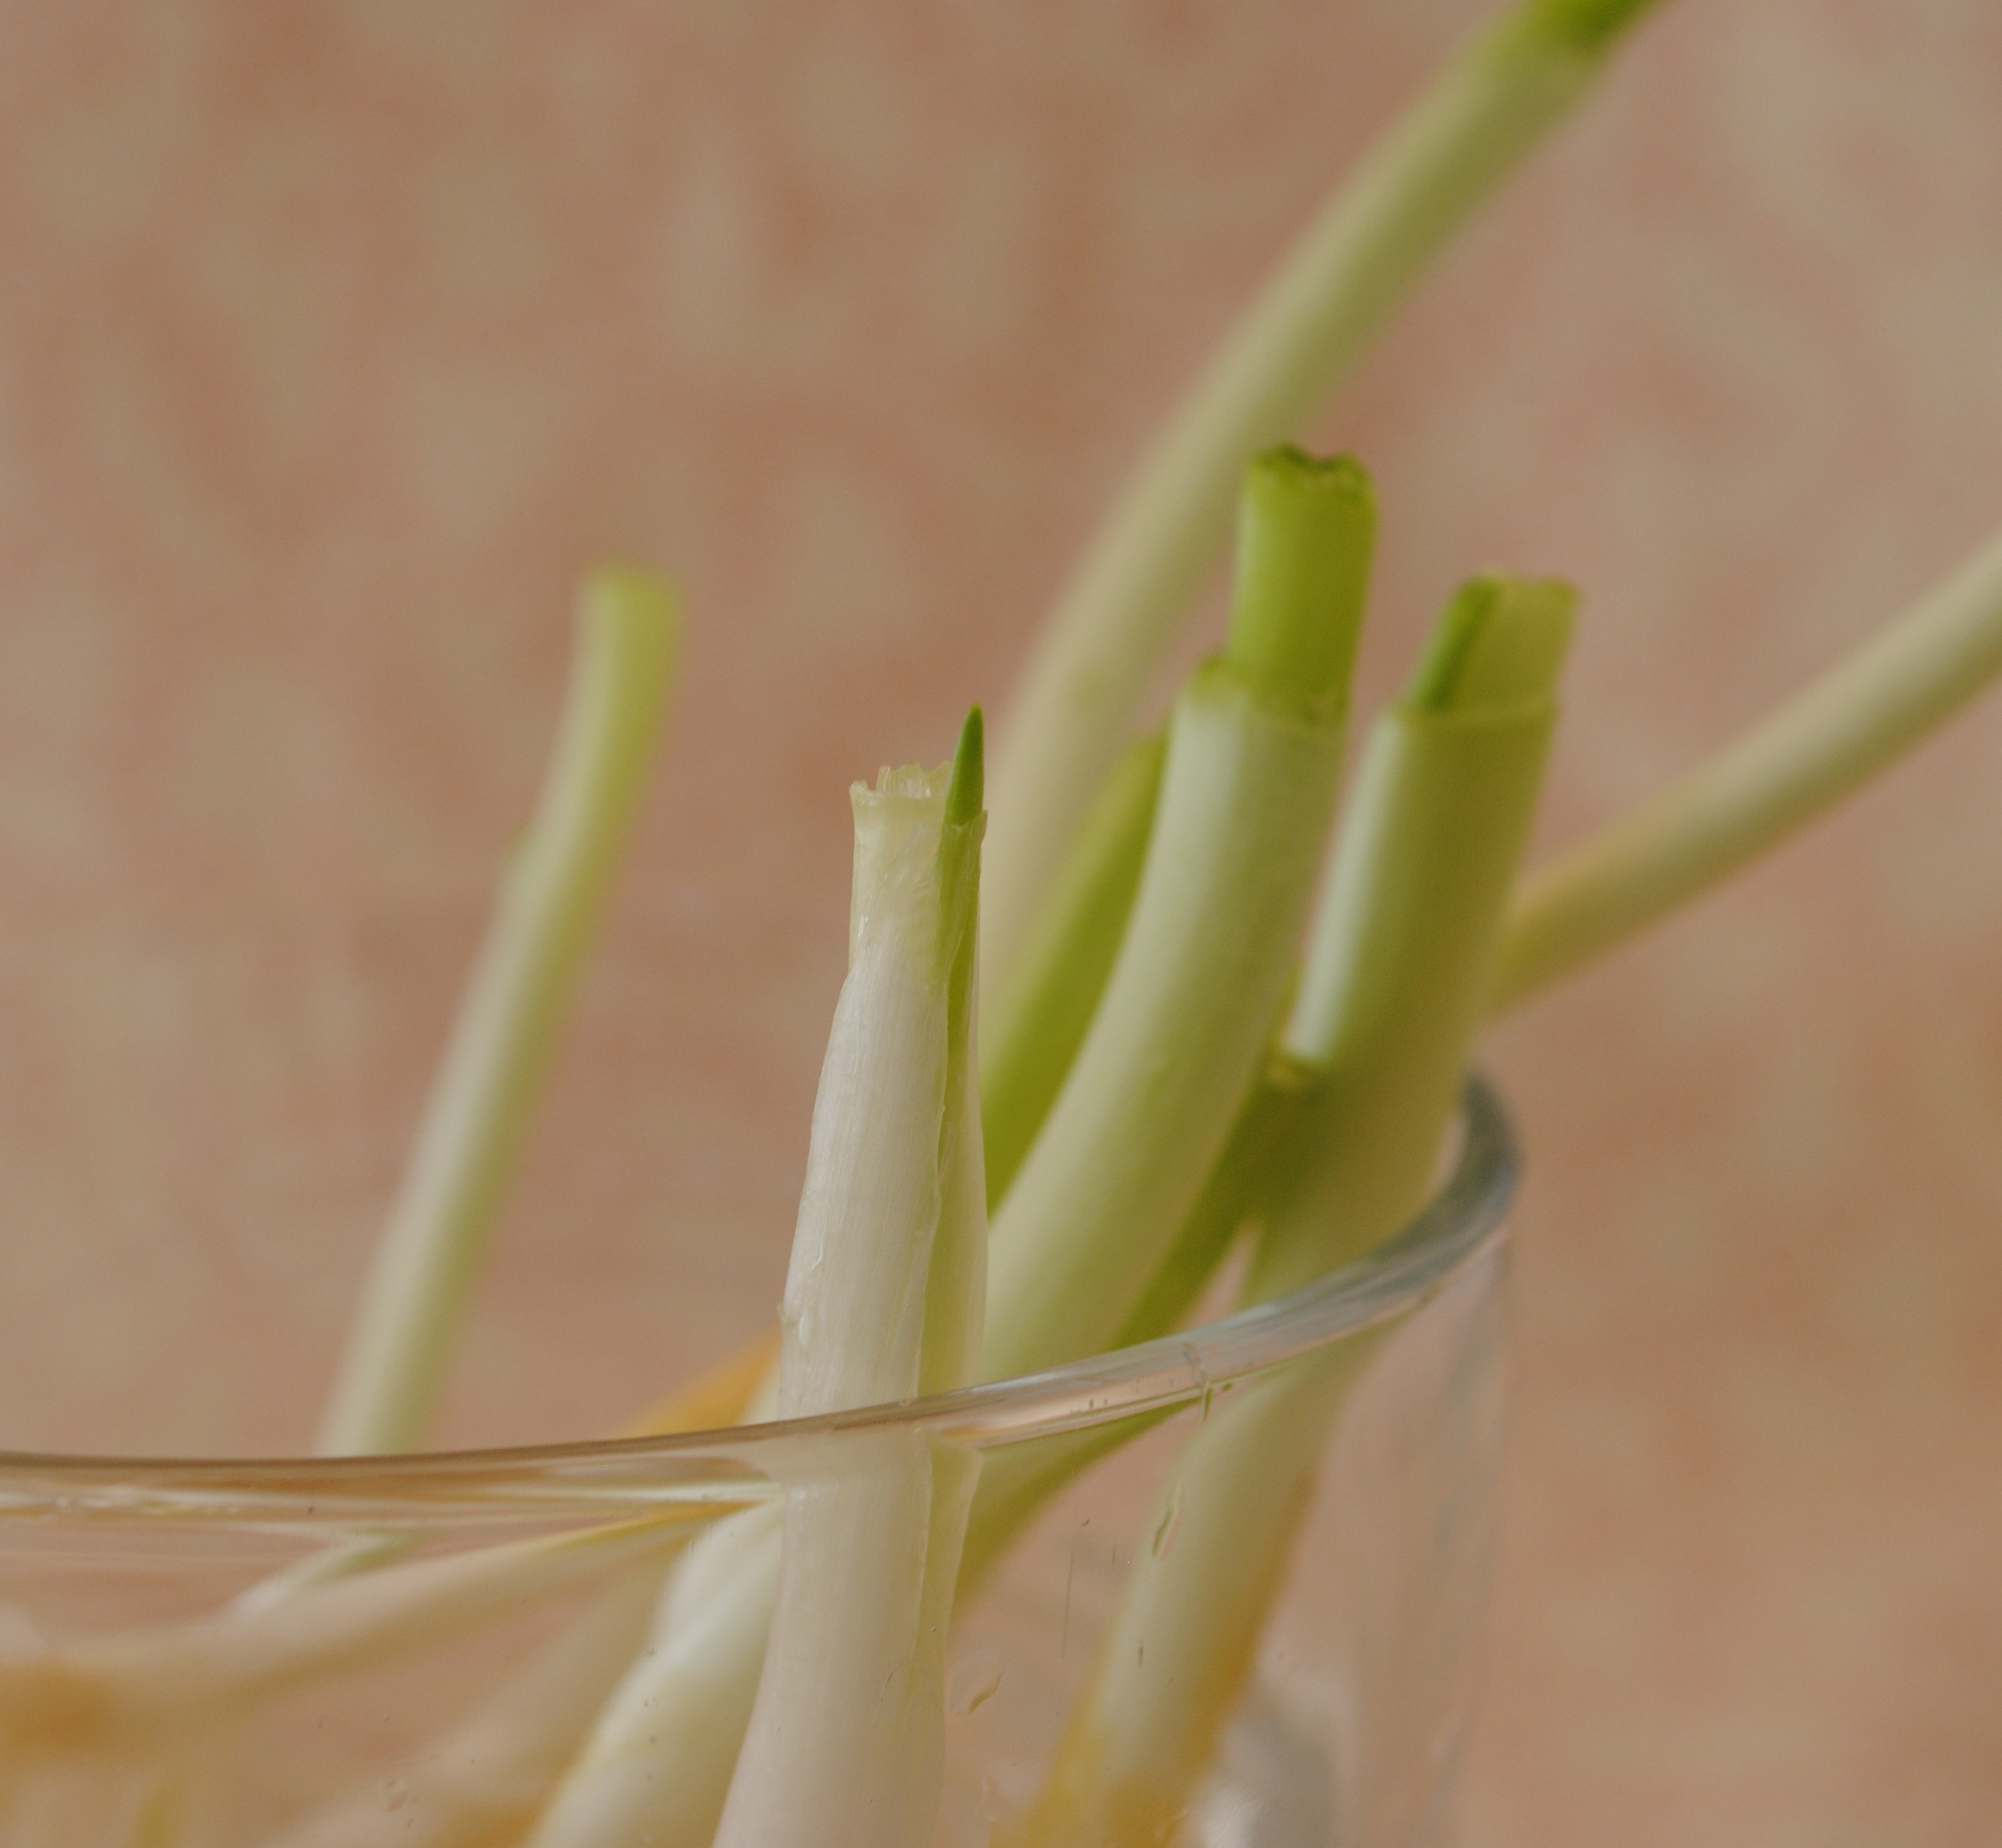 How to regrow scallions/green onions